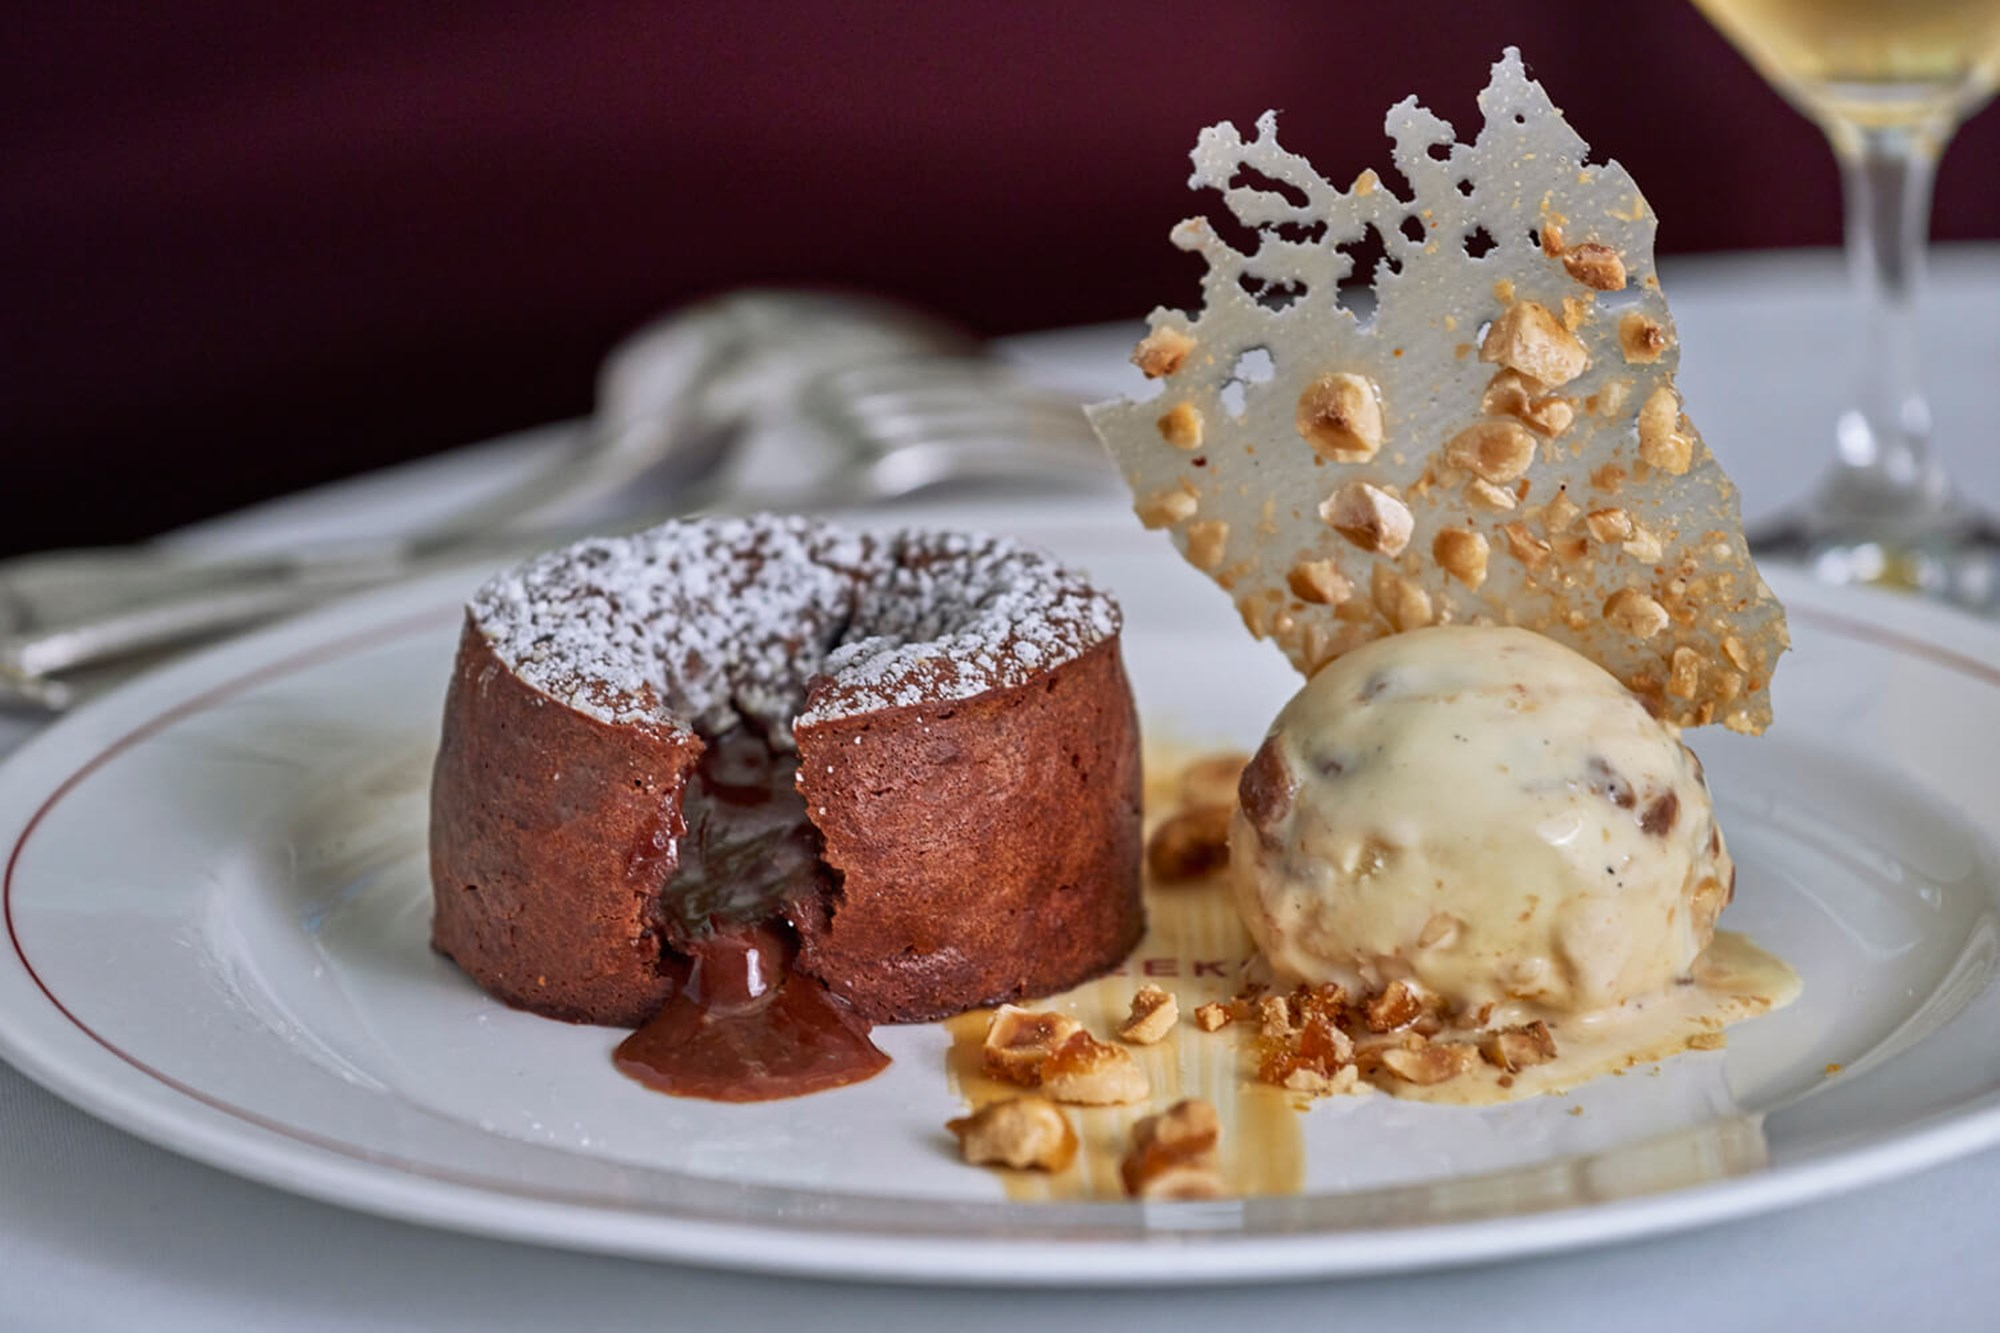 Dessert at J Sheekey, a Romantic Seafood and Fish Restaurant in London's West End